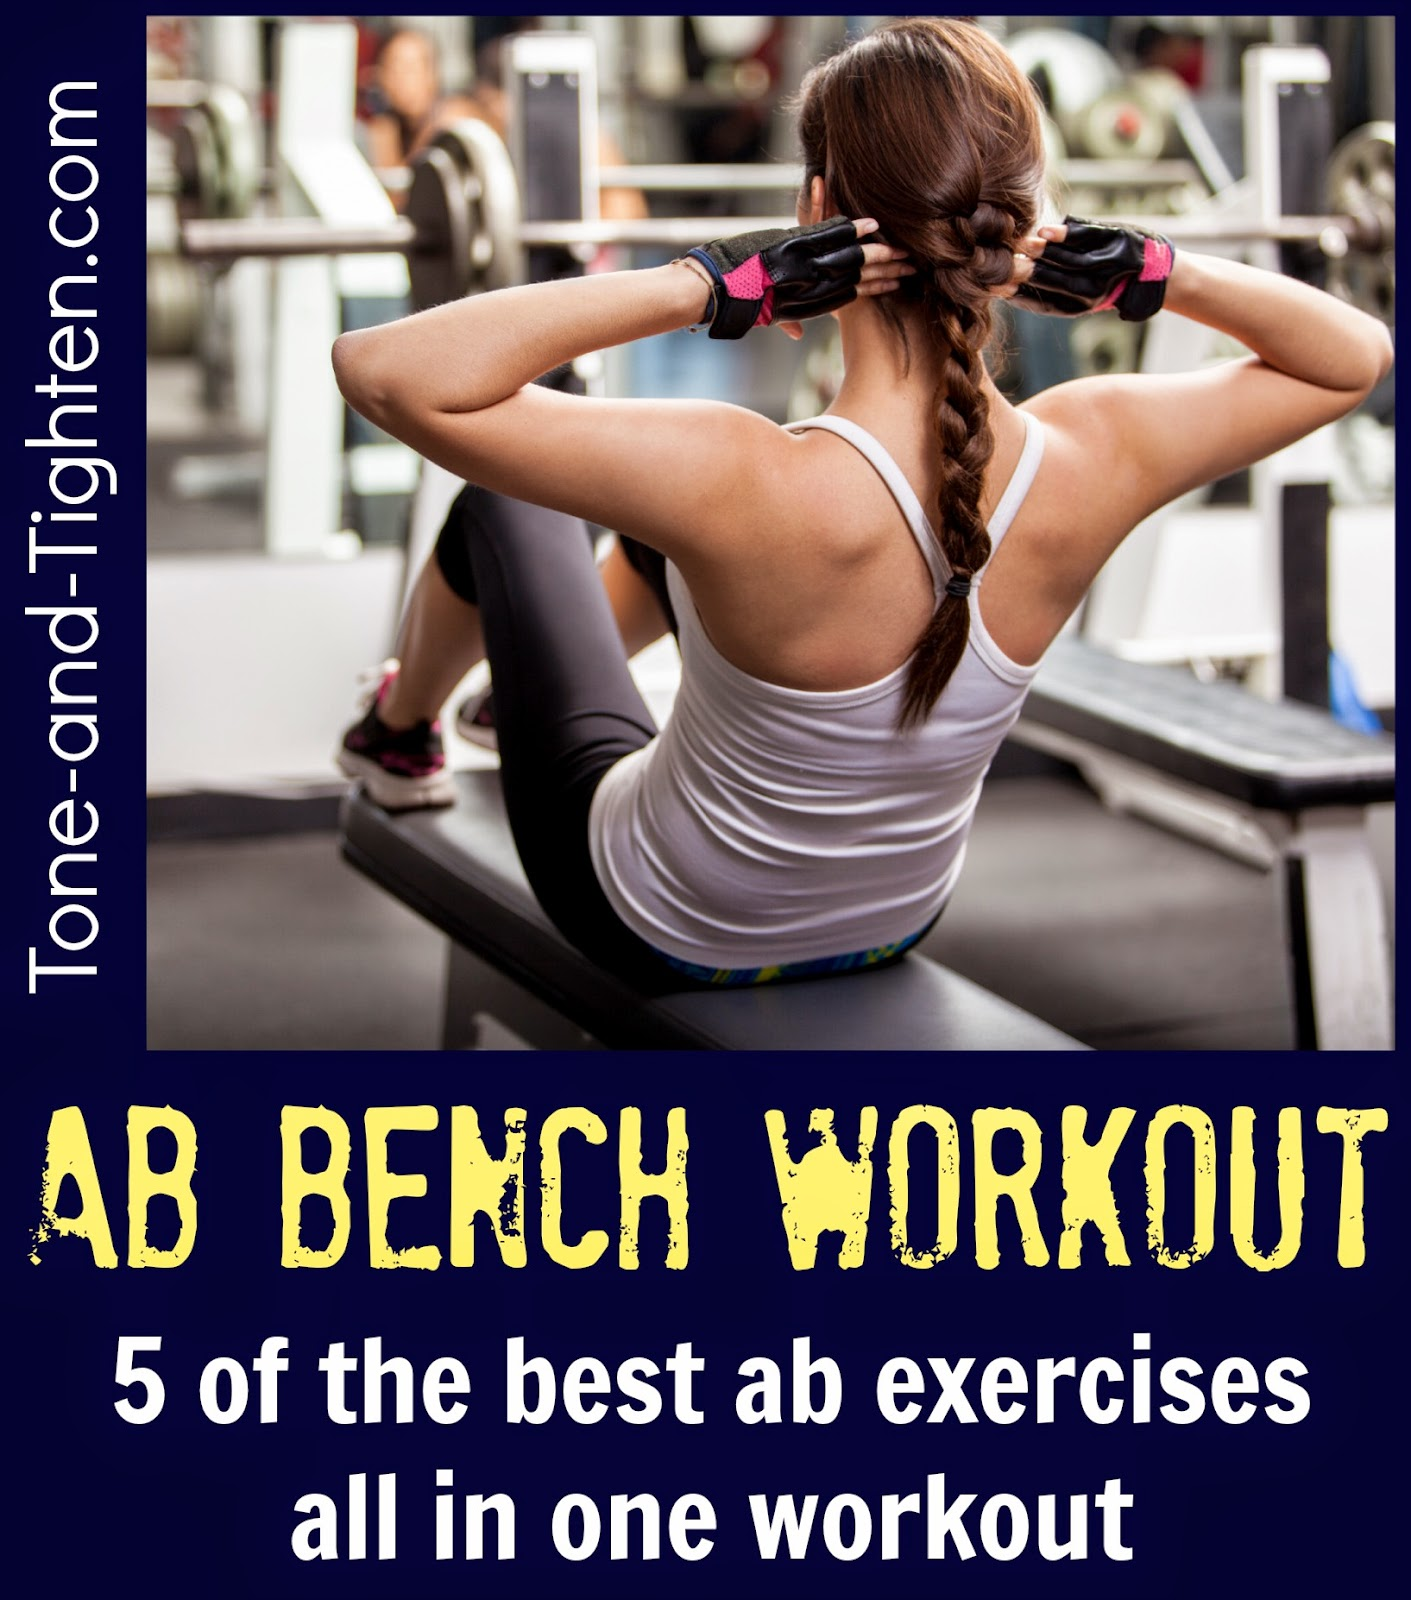 3 Day Ab Workout For A Shredded Six Pack